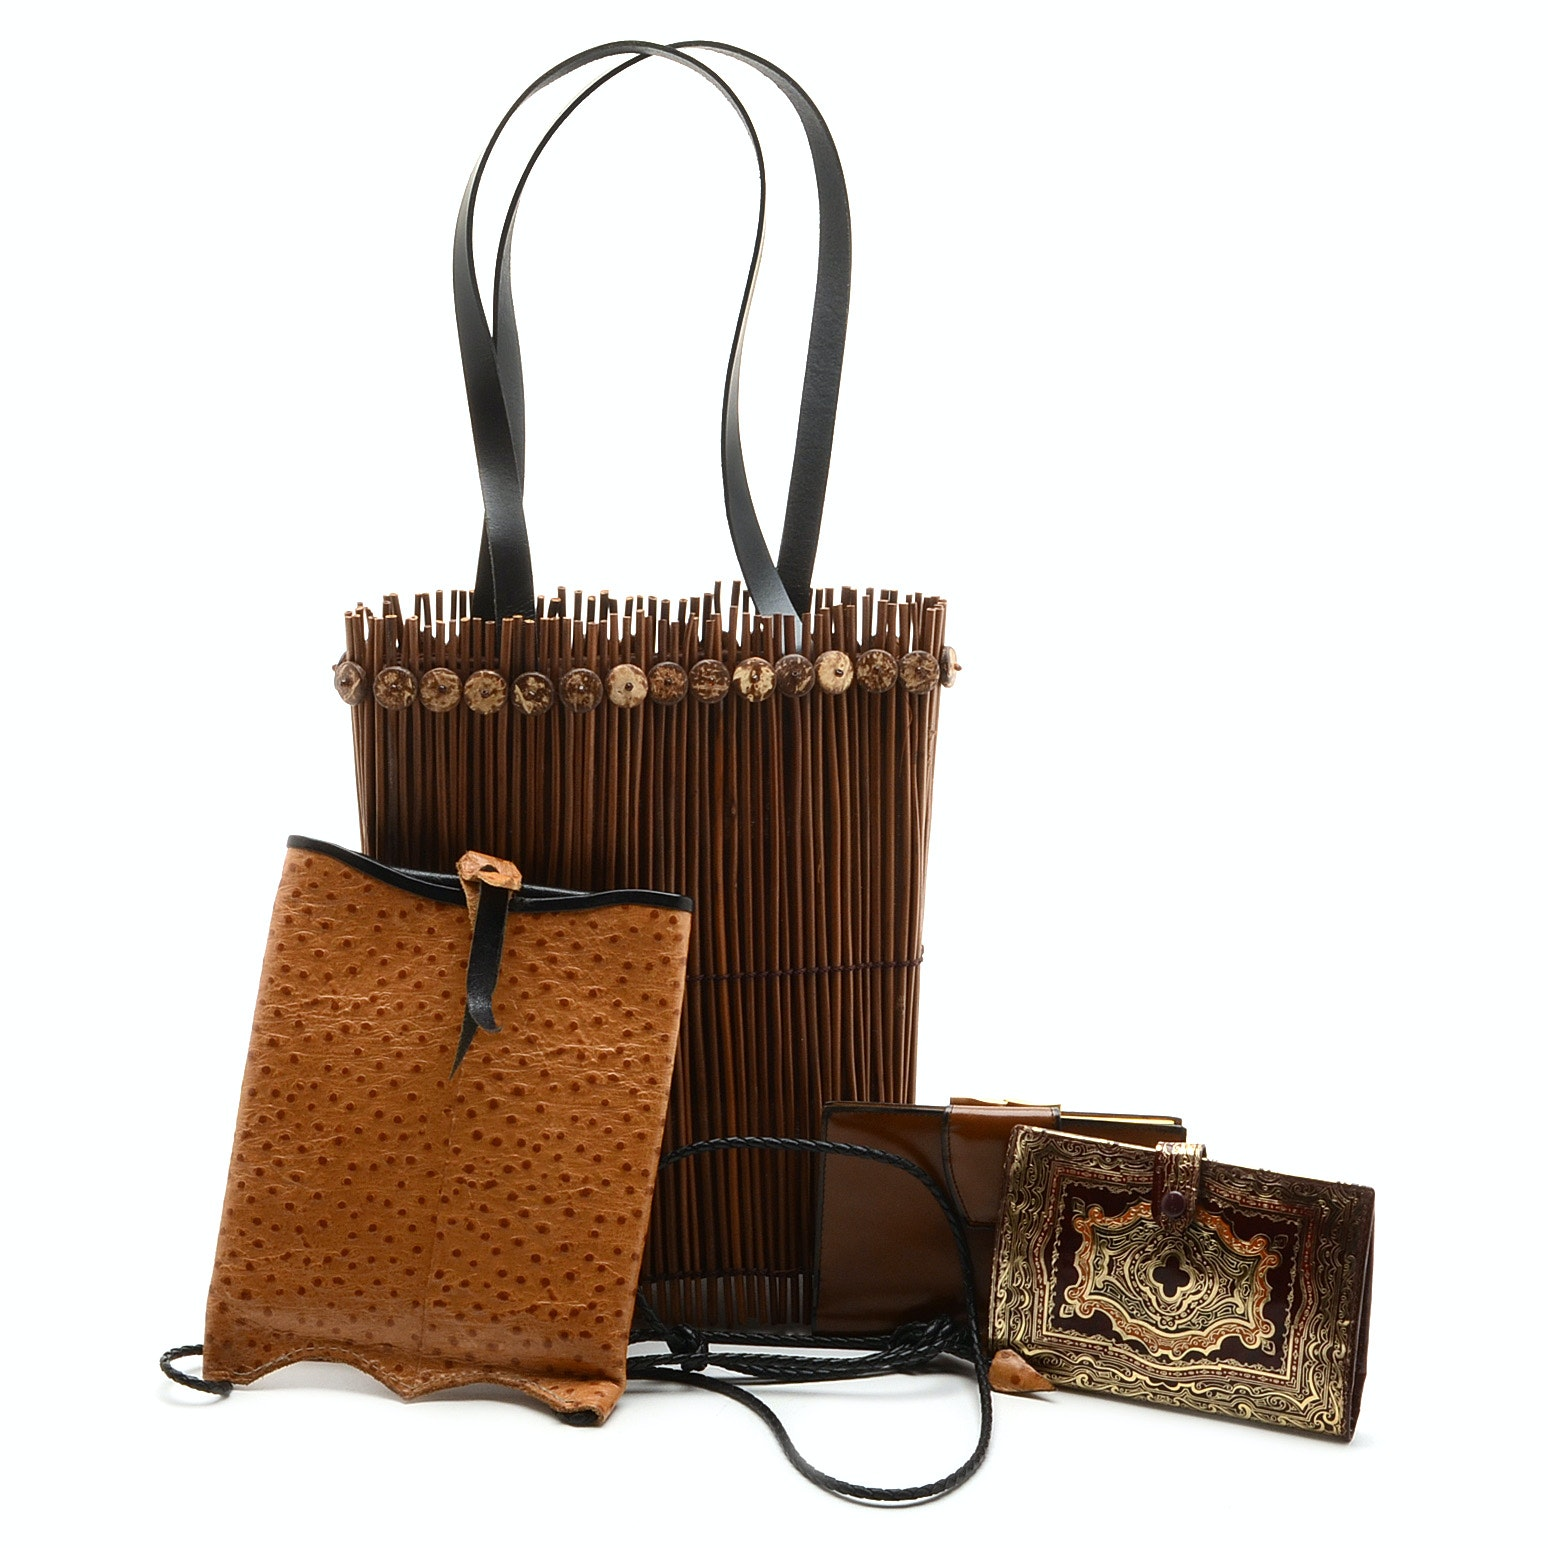 Collection of Vintage Handbags and Wallets including an Ostrich Cross-body